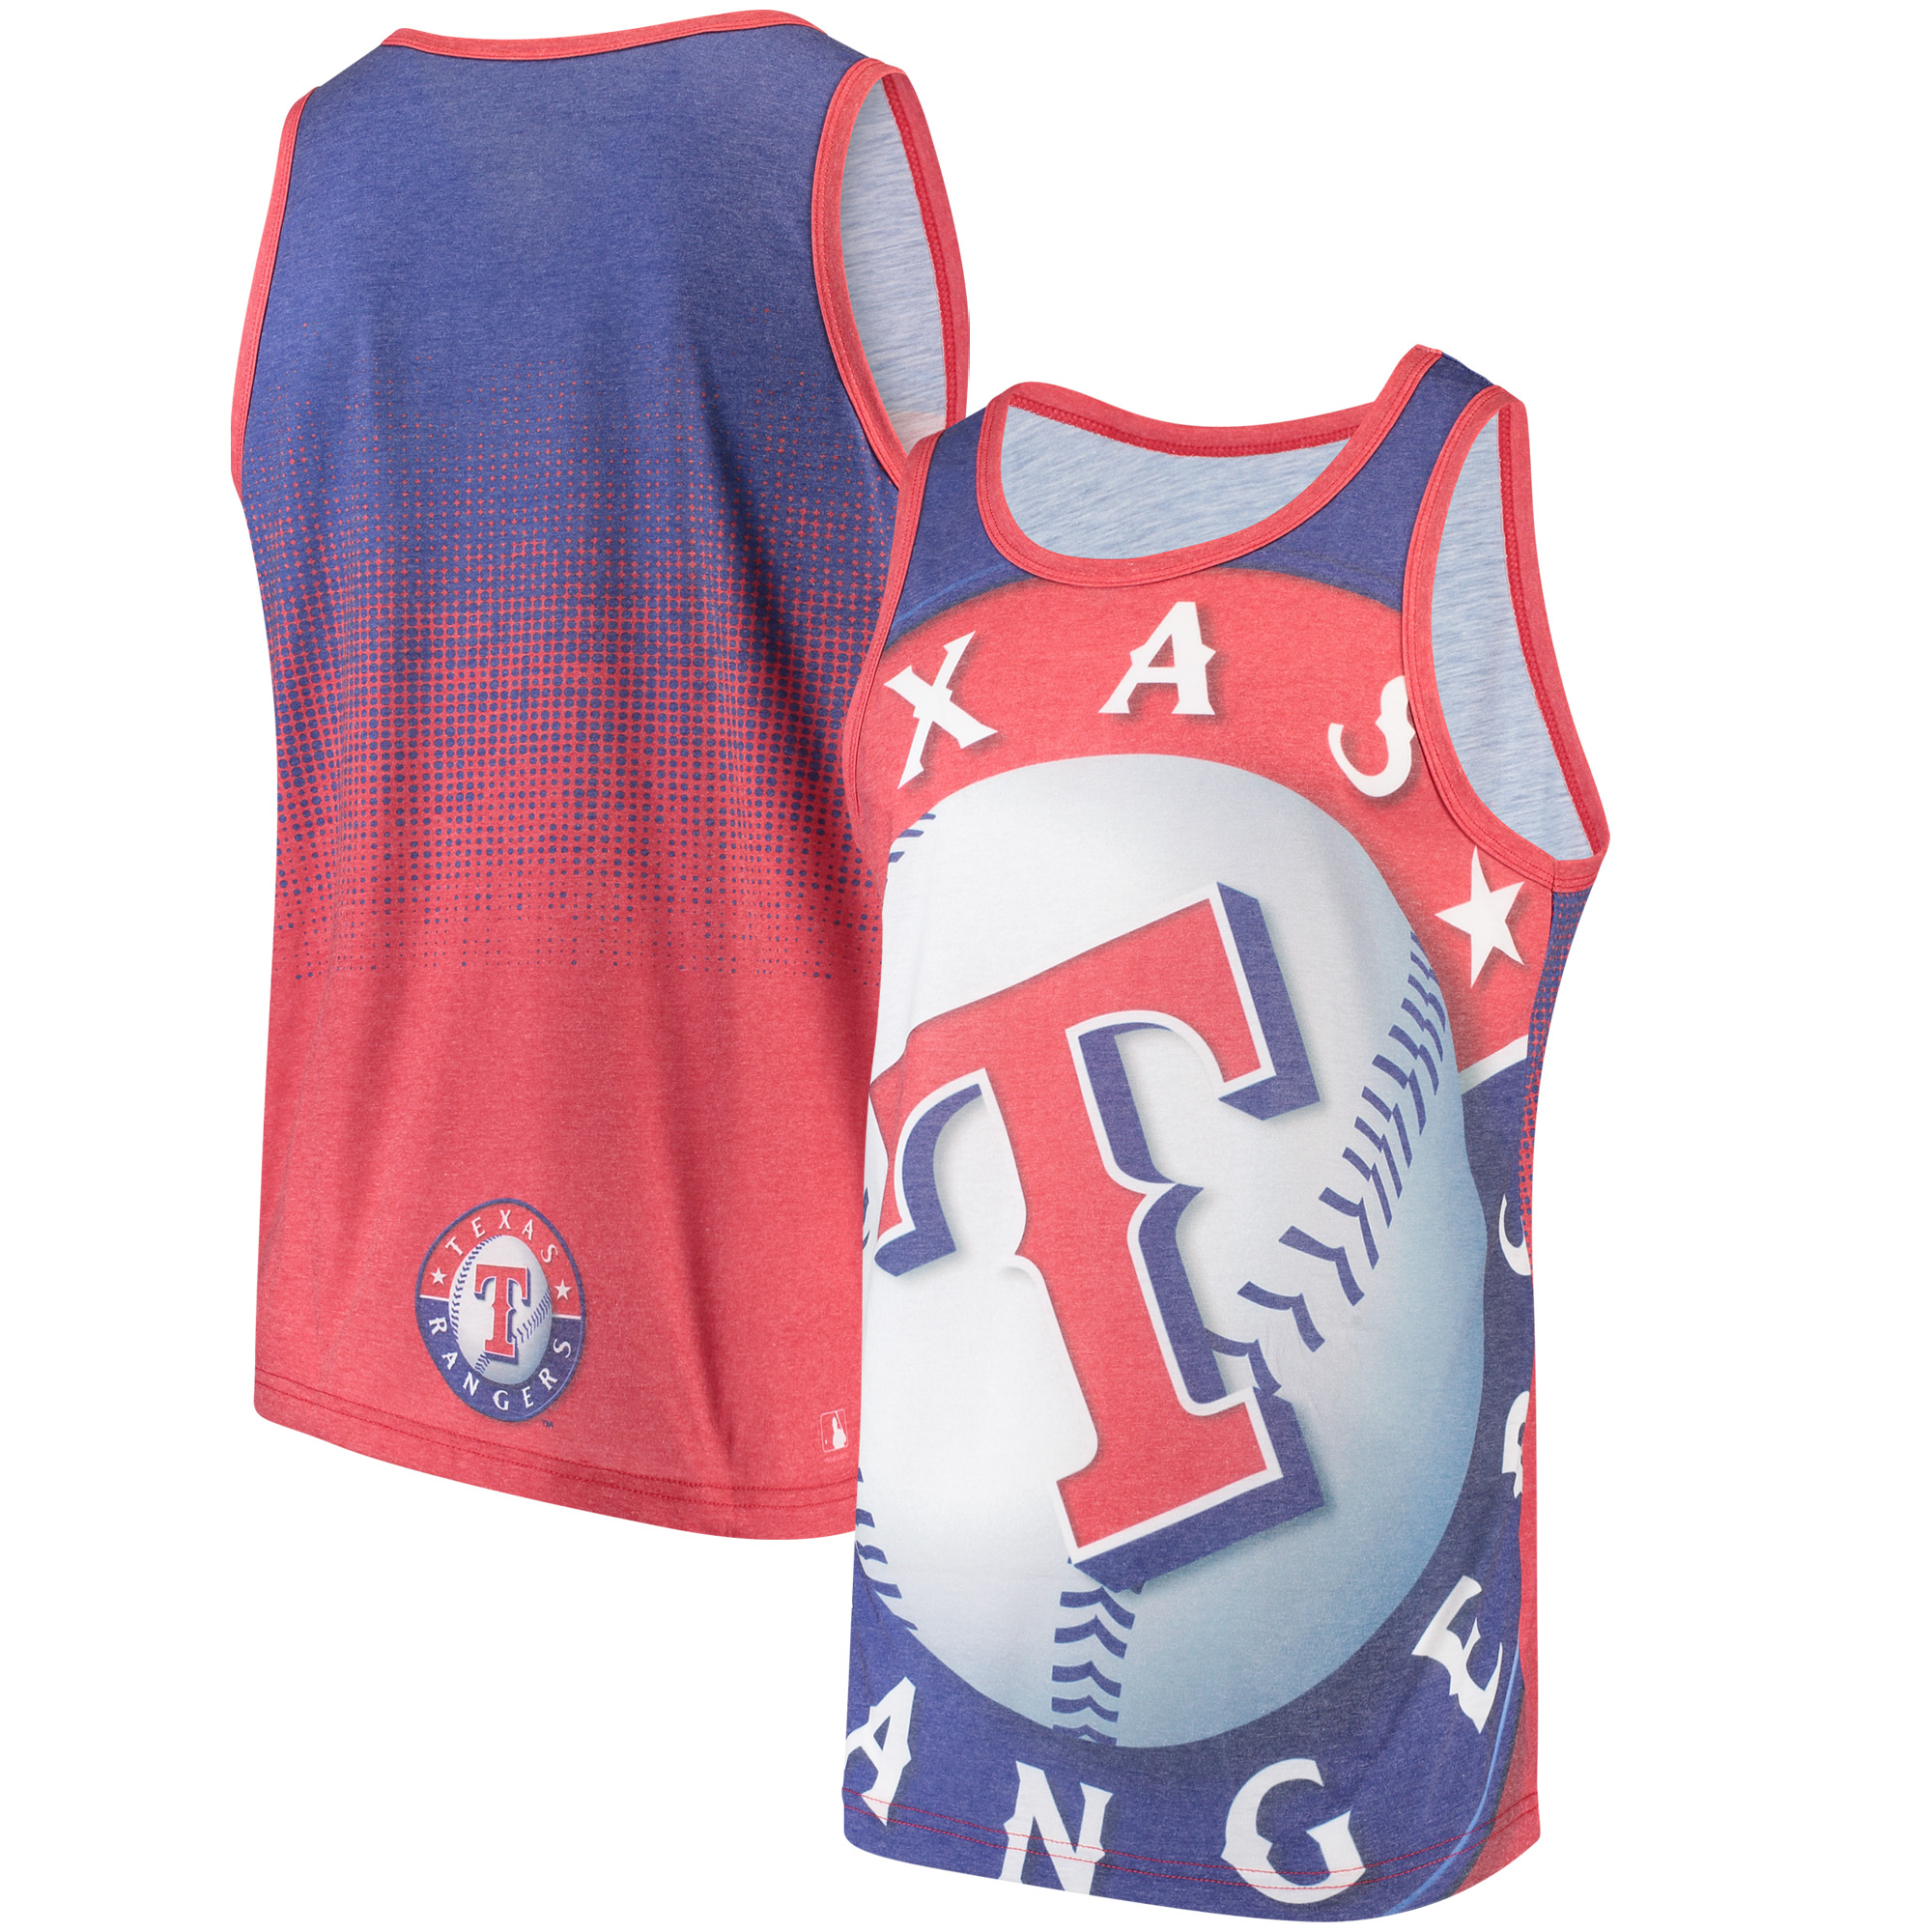 Texas Rangers Gradient Big Logo Tank Top - Red/Royal